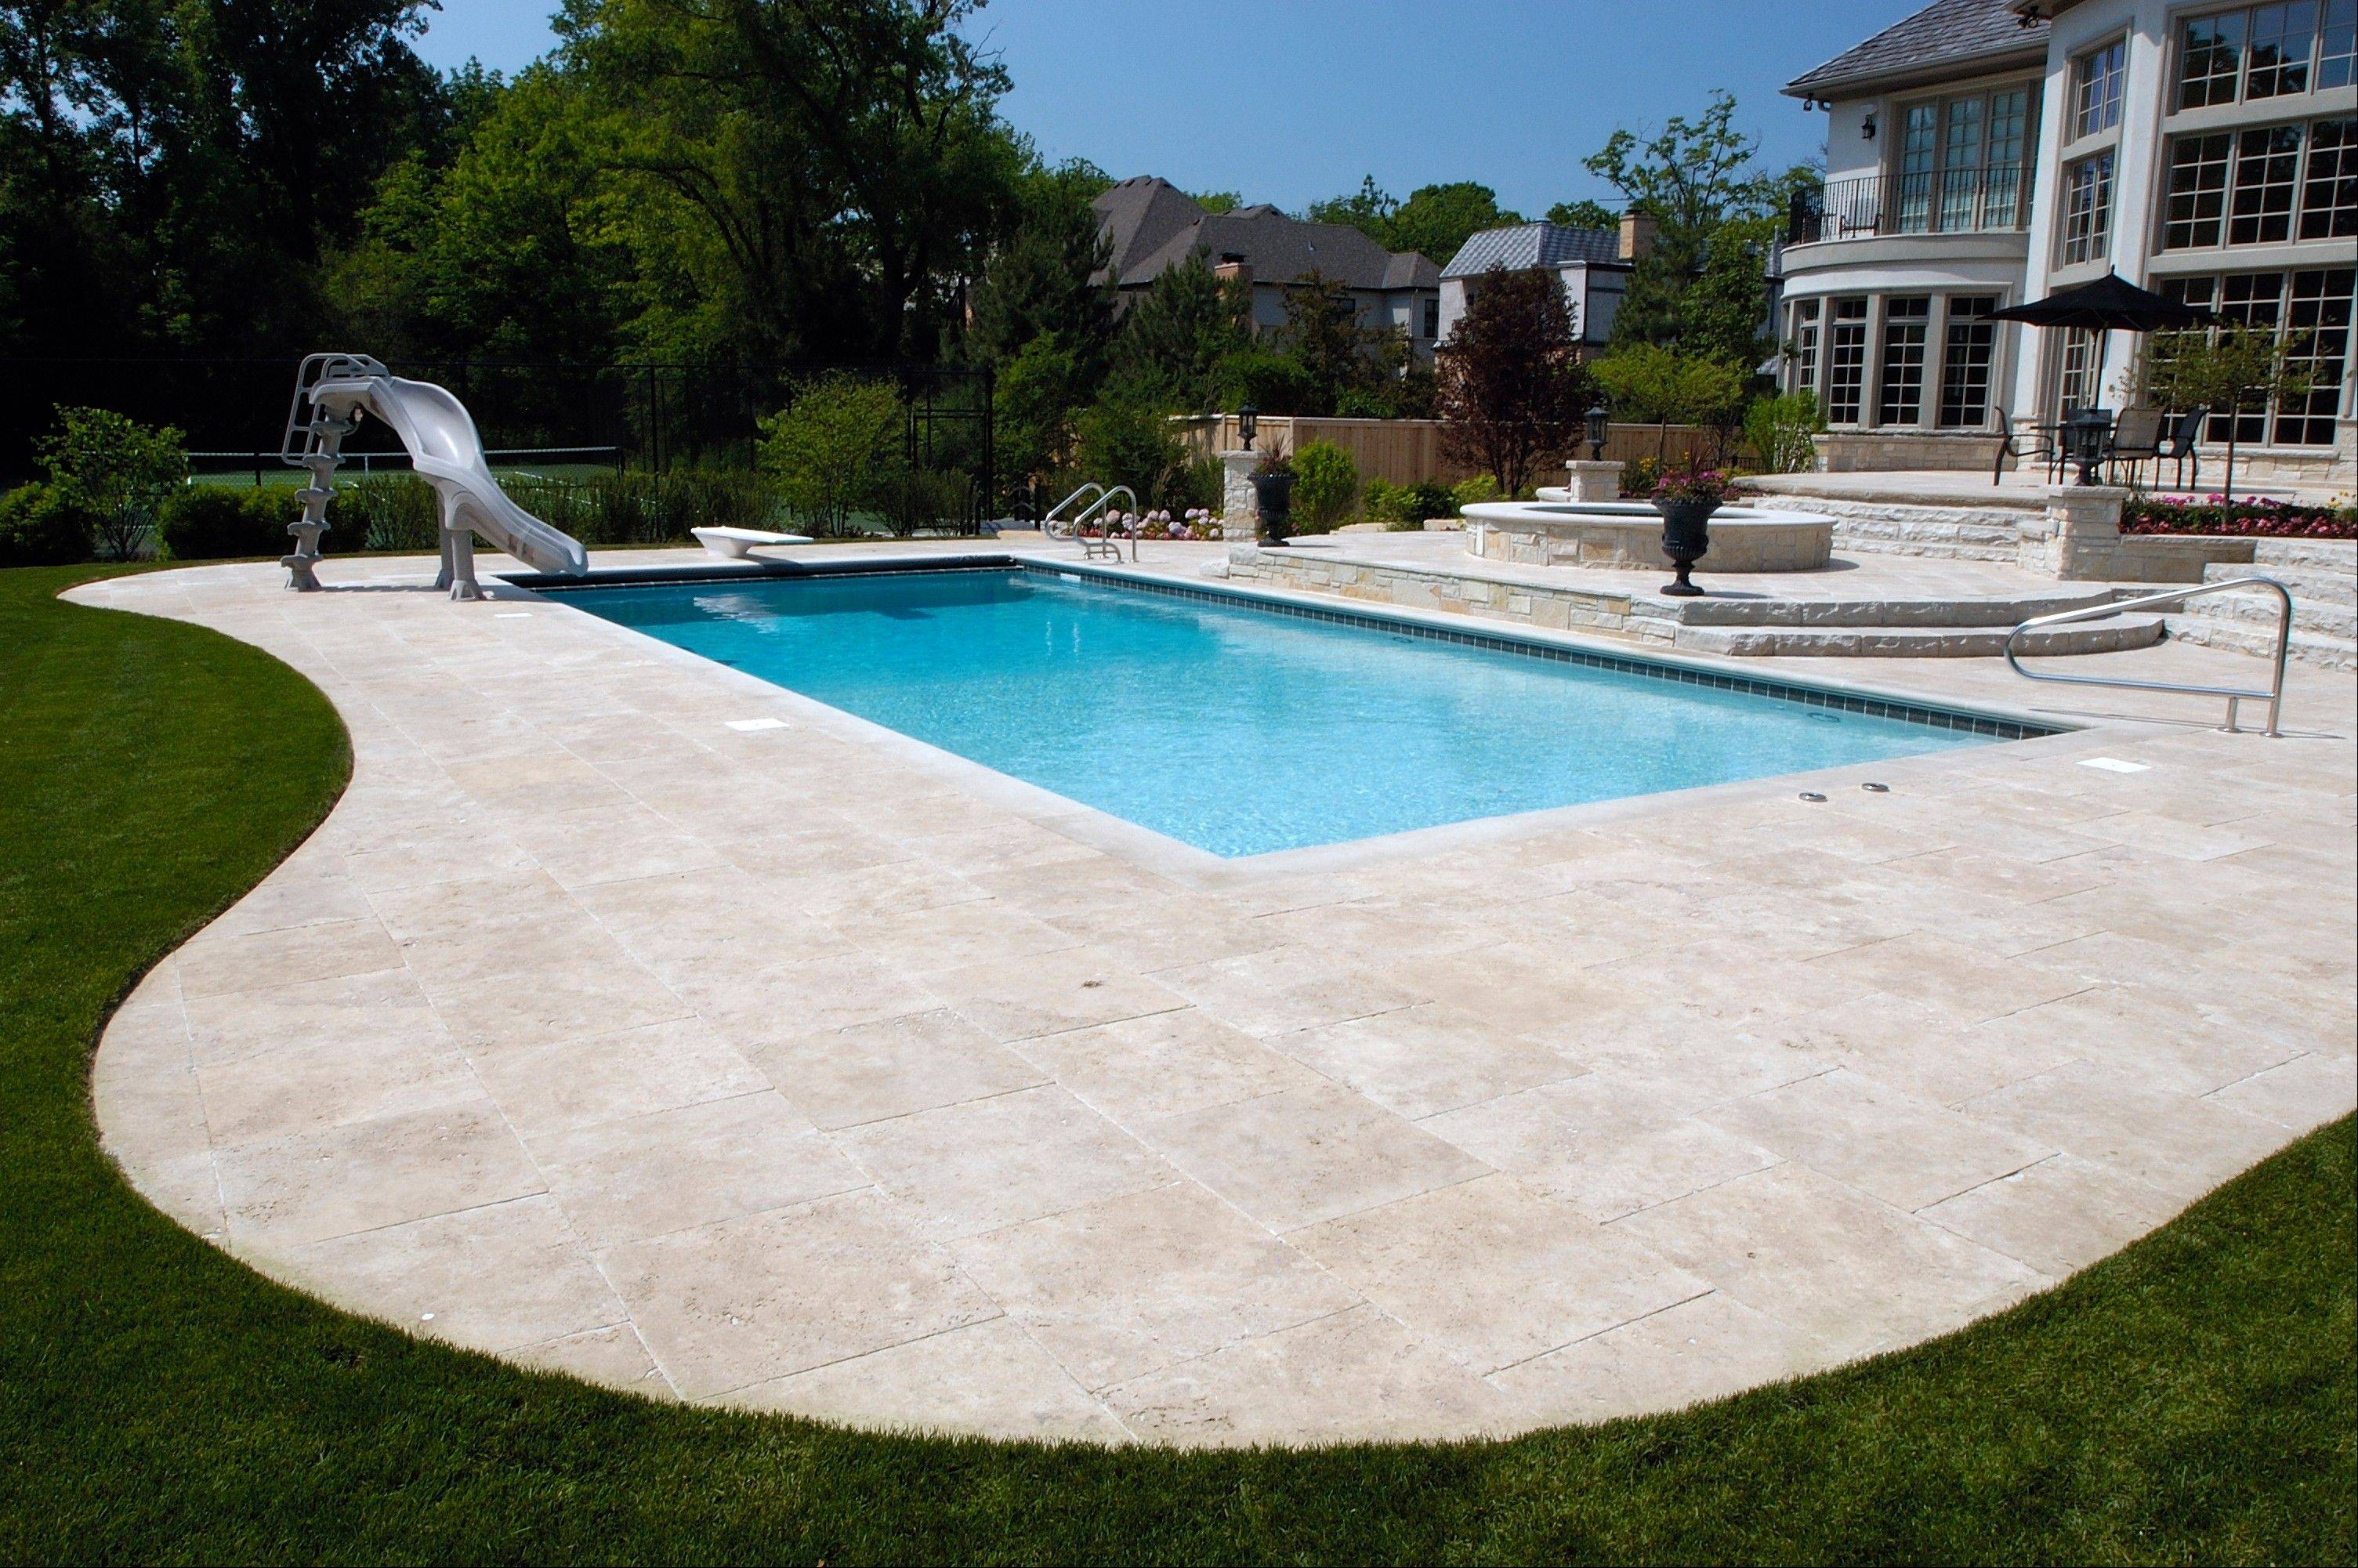 Inground pools are still considered a luxury item in this climate where they can be used for only about four months of the year.